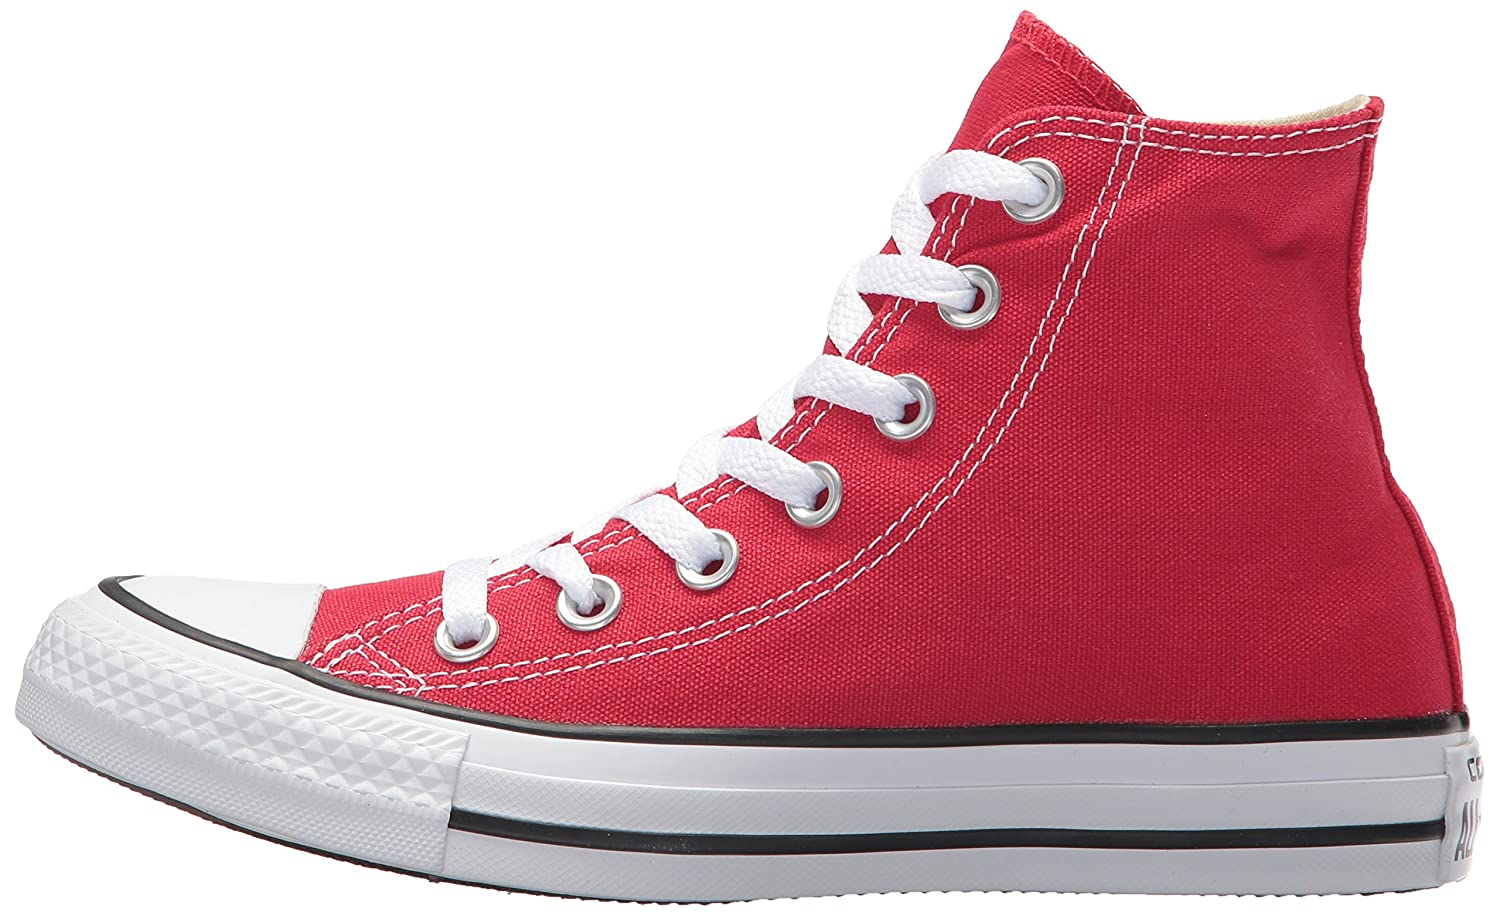 Converse Chuck Top Taylor All Star High Top Chuck B008JGMVRM 11.5 US Men/13.5 US Women|Red 285c00